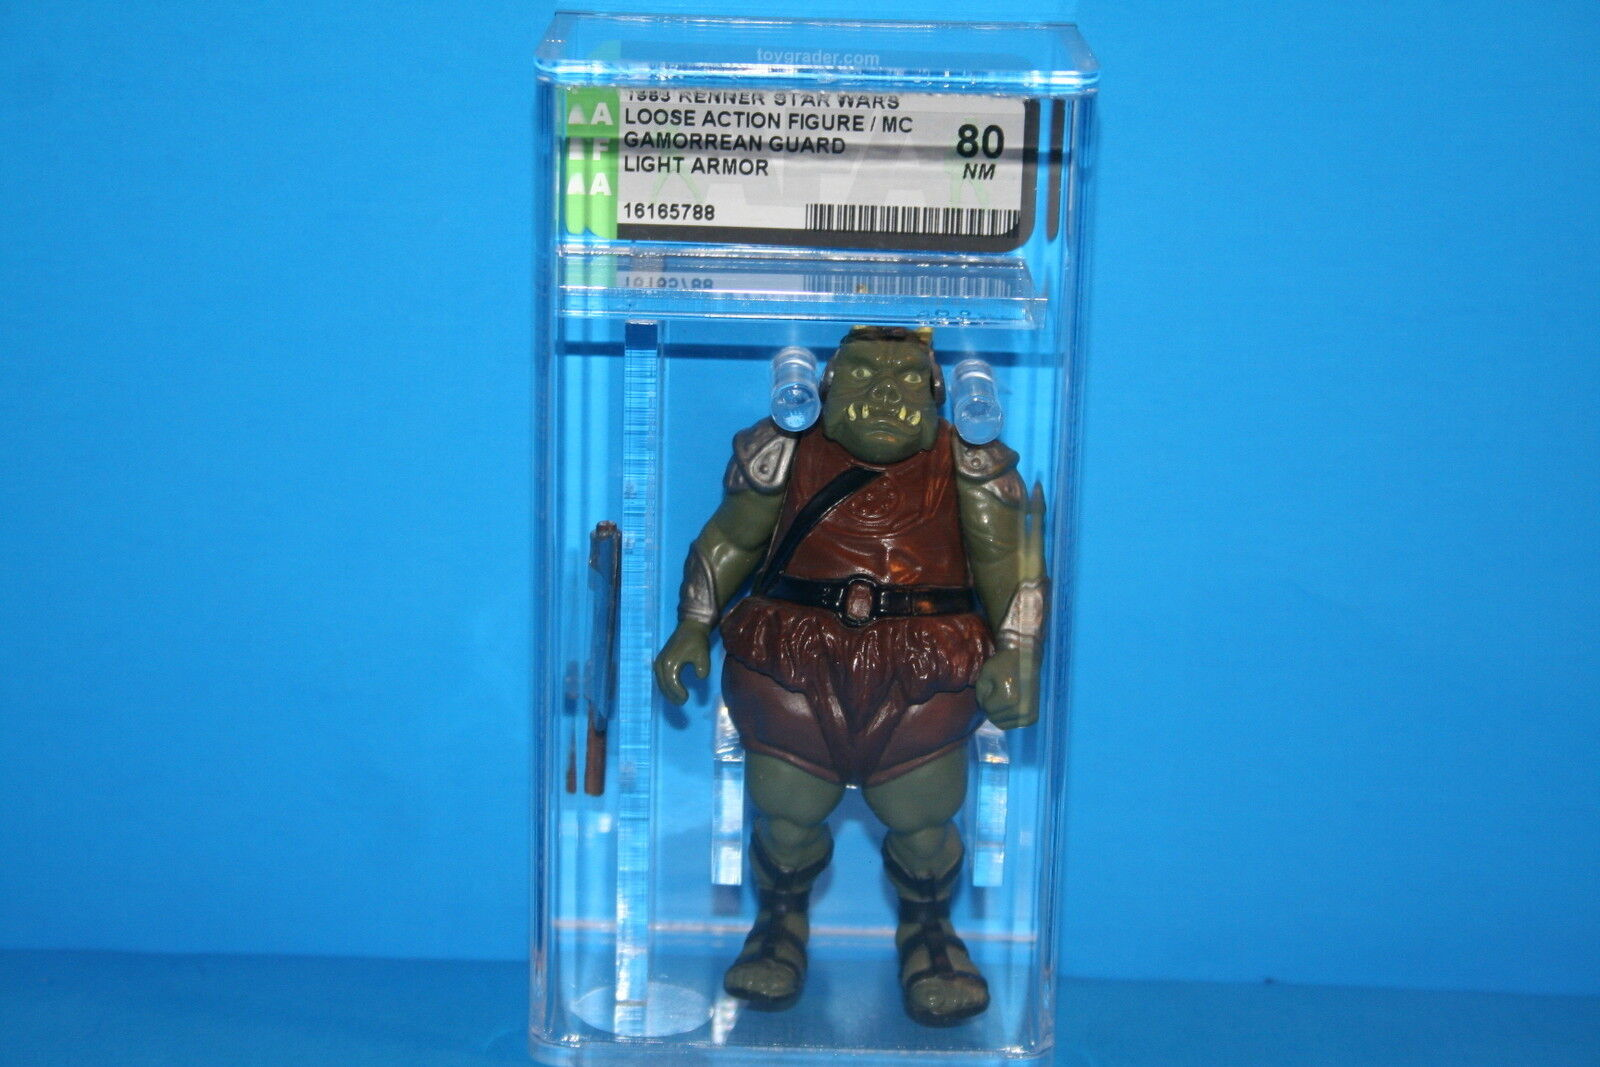 VINTAGE STAR WARS AFA GRADED GAMORREAN GUARD 80 NM 83 MACAU WEAPON KENNER FV